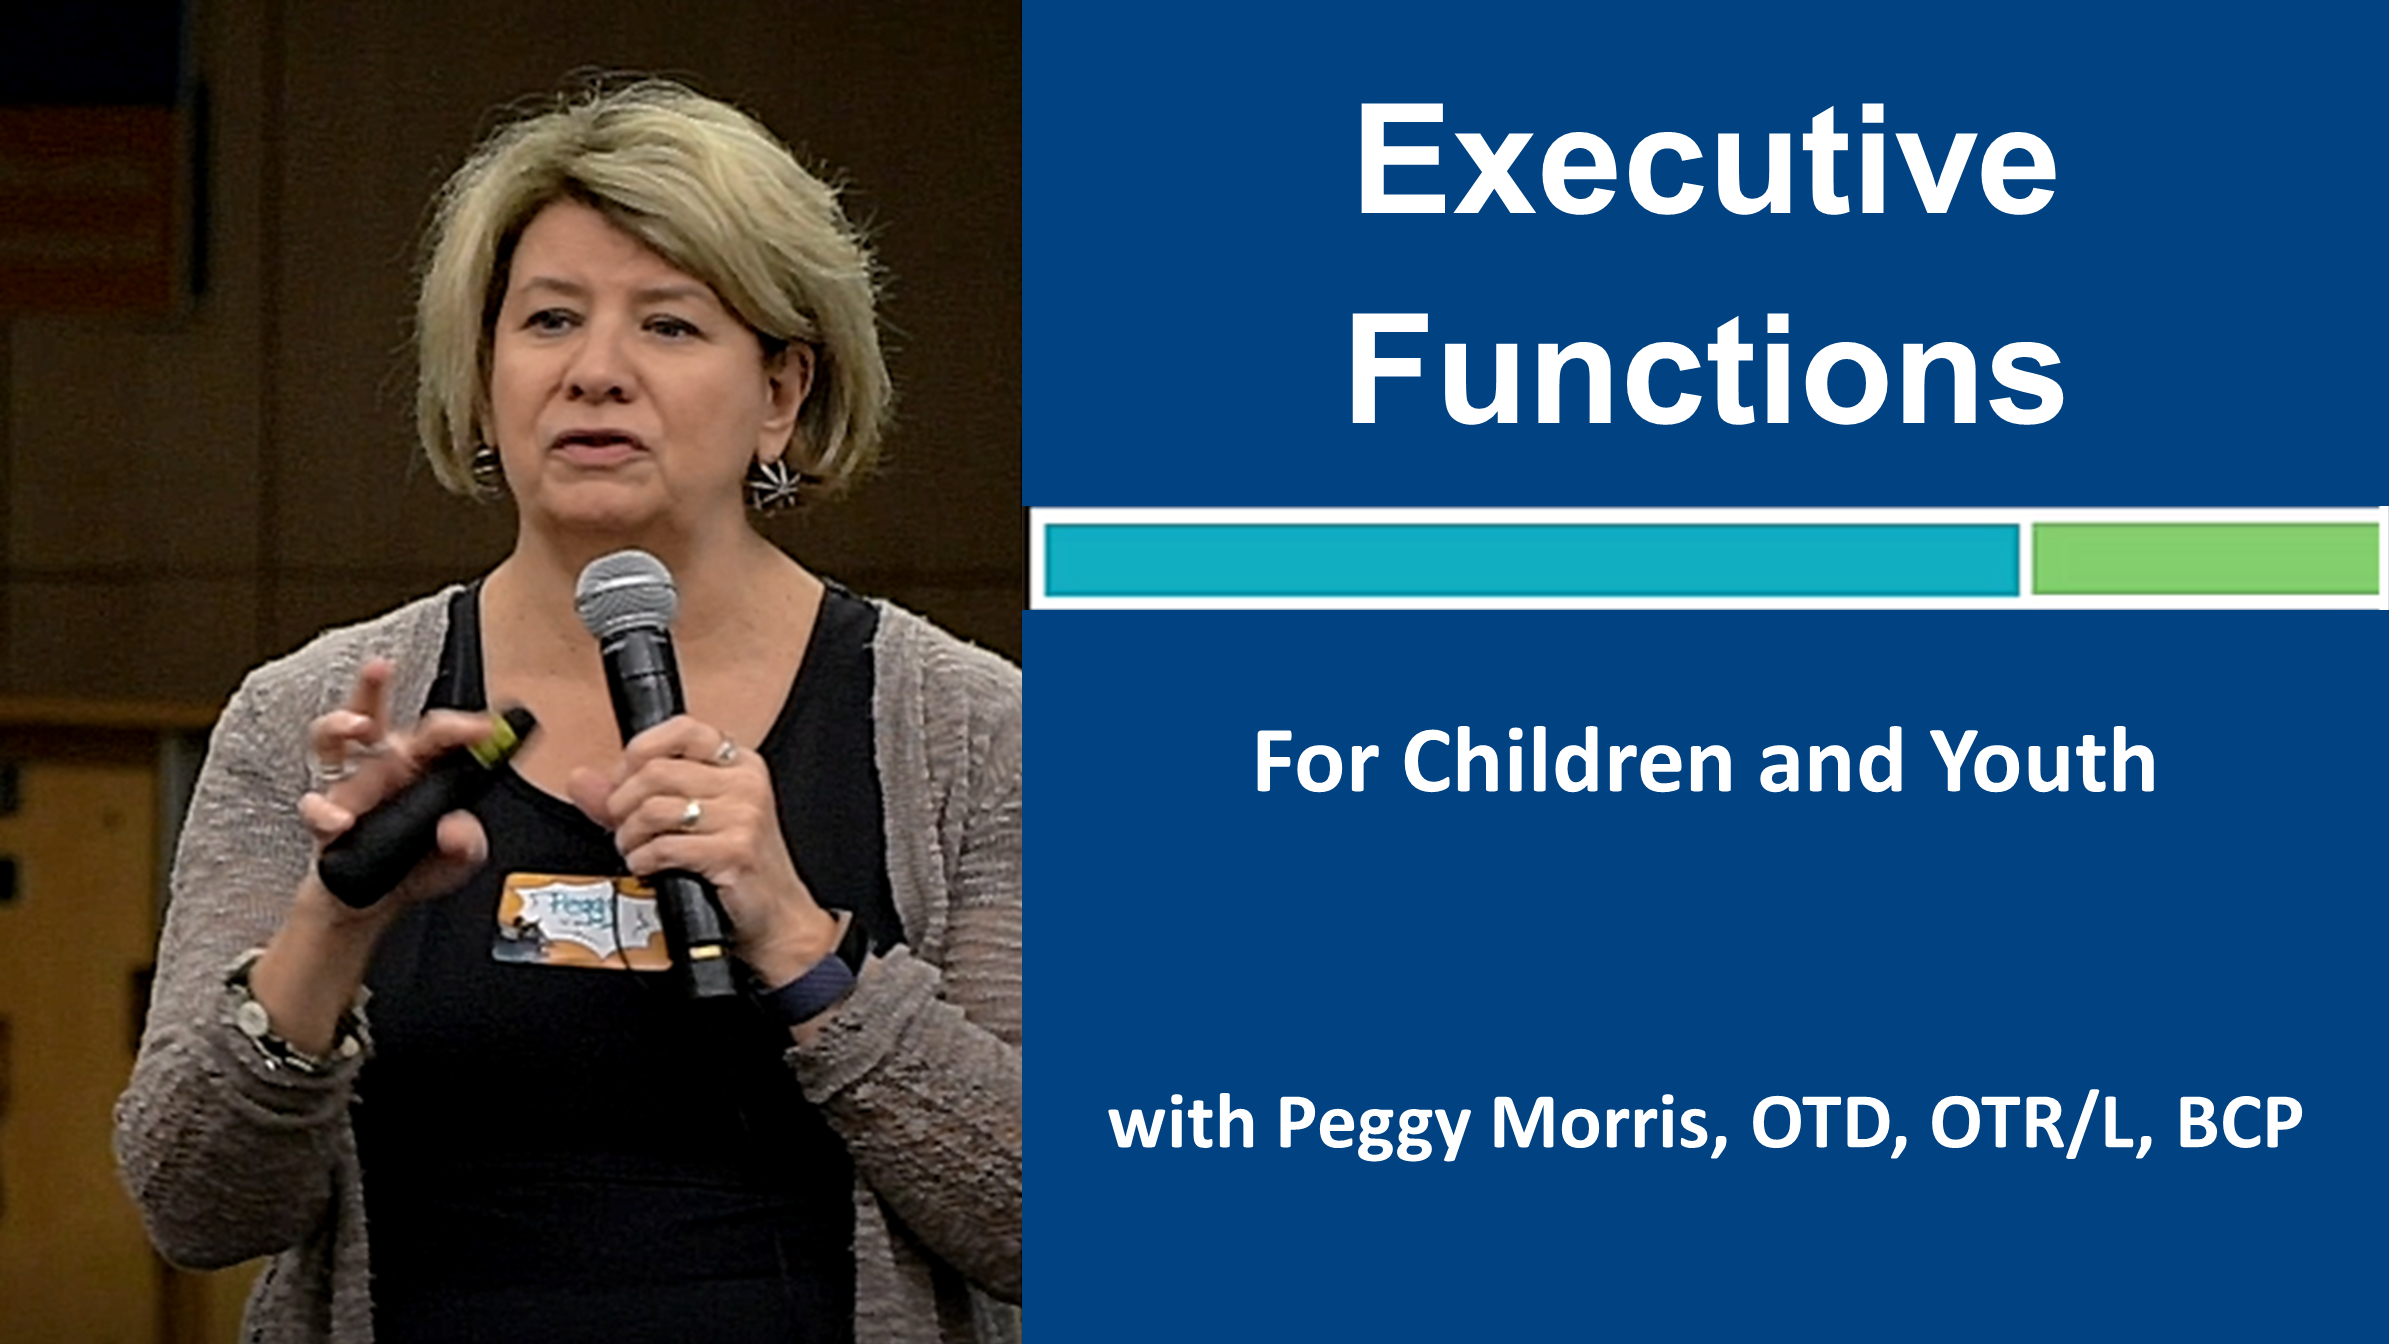 Webinar 2: Executive Functions for Children and Youth with Peggy Morris, OTD, OTR/L, BCP